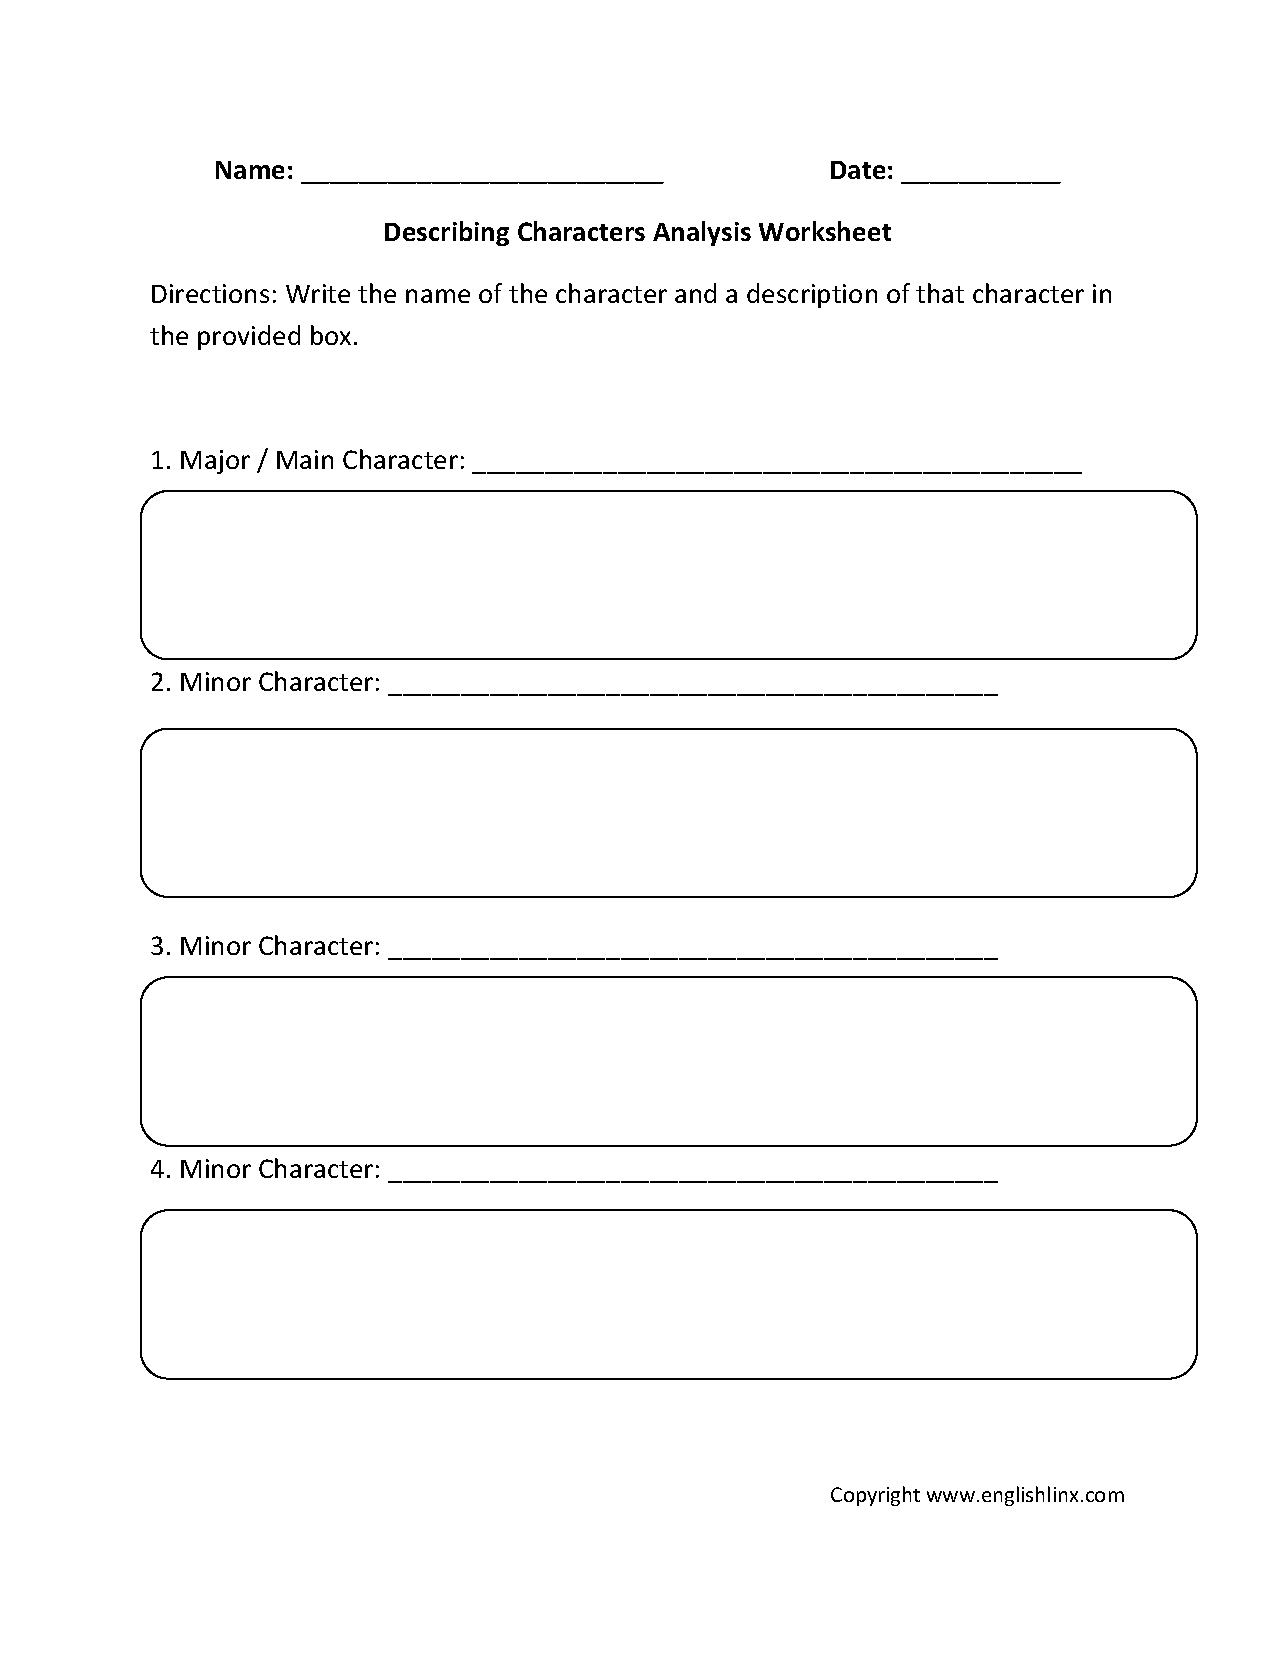 Englishlinx.com | Character Analysis Worksheets